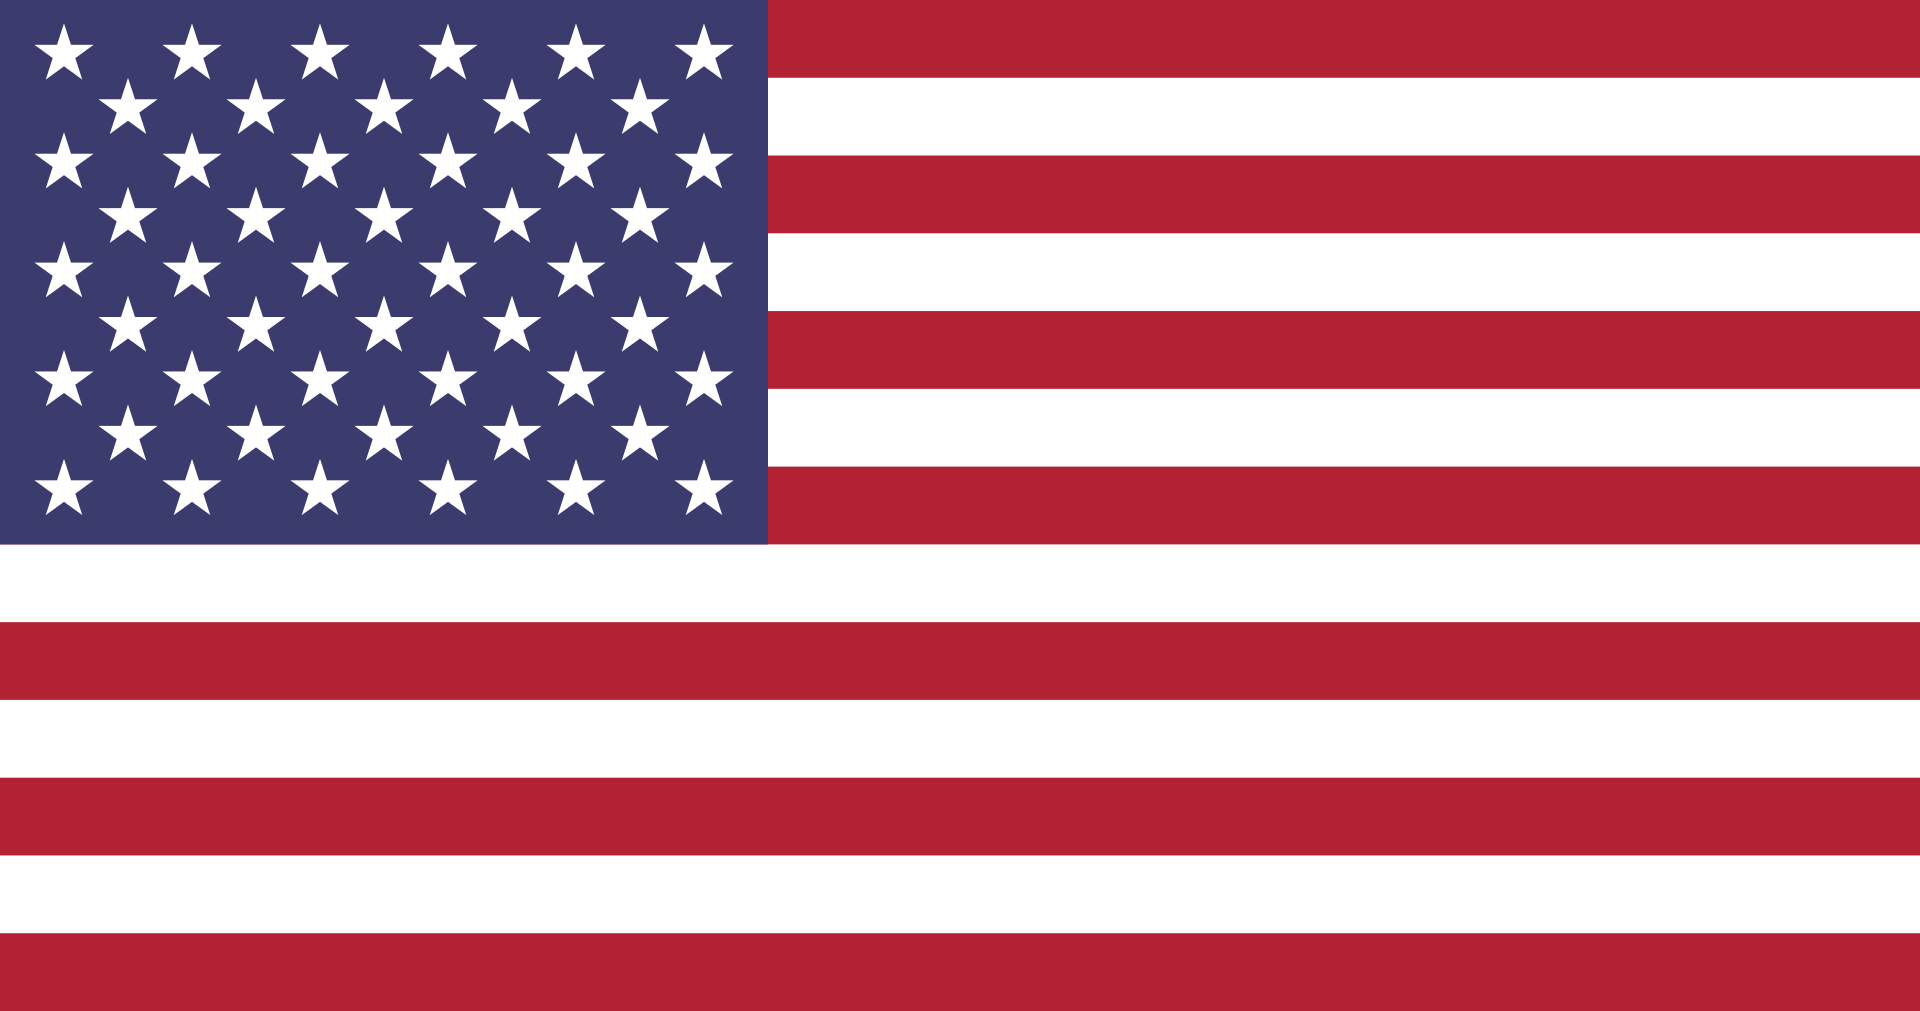 US Flag - Public Domain, https://en.wikipedia.org/w/index.php?curid=33285428